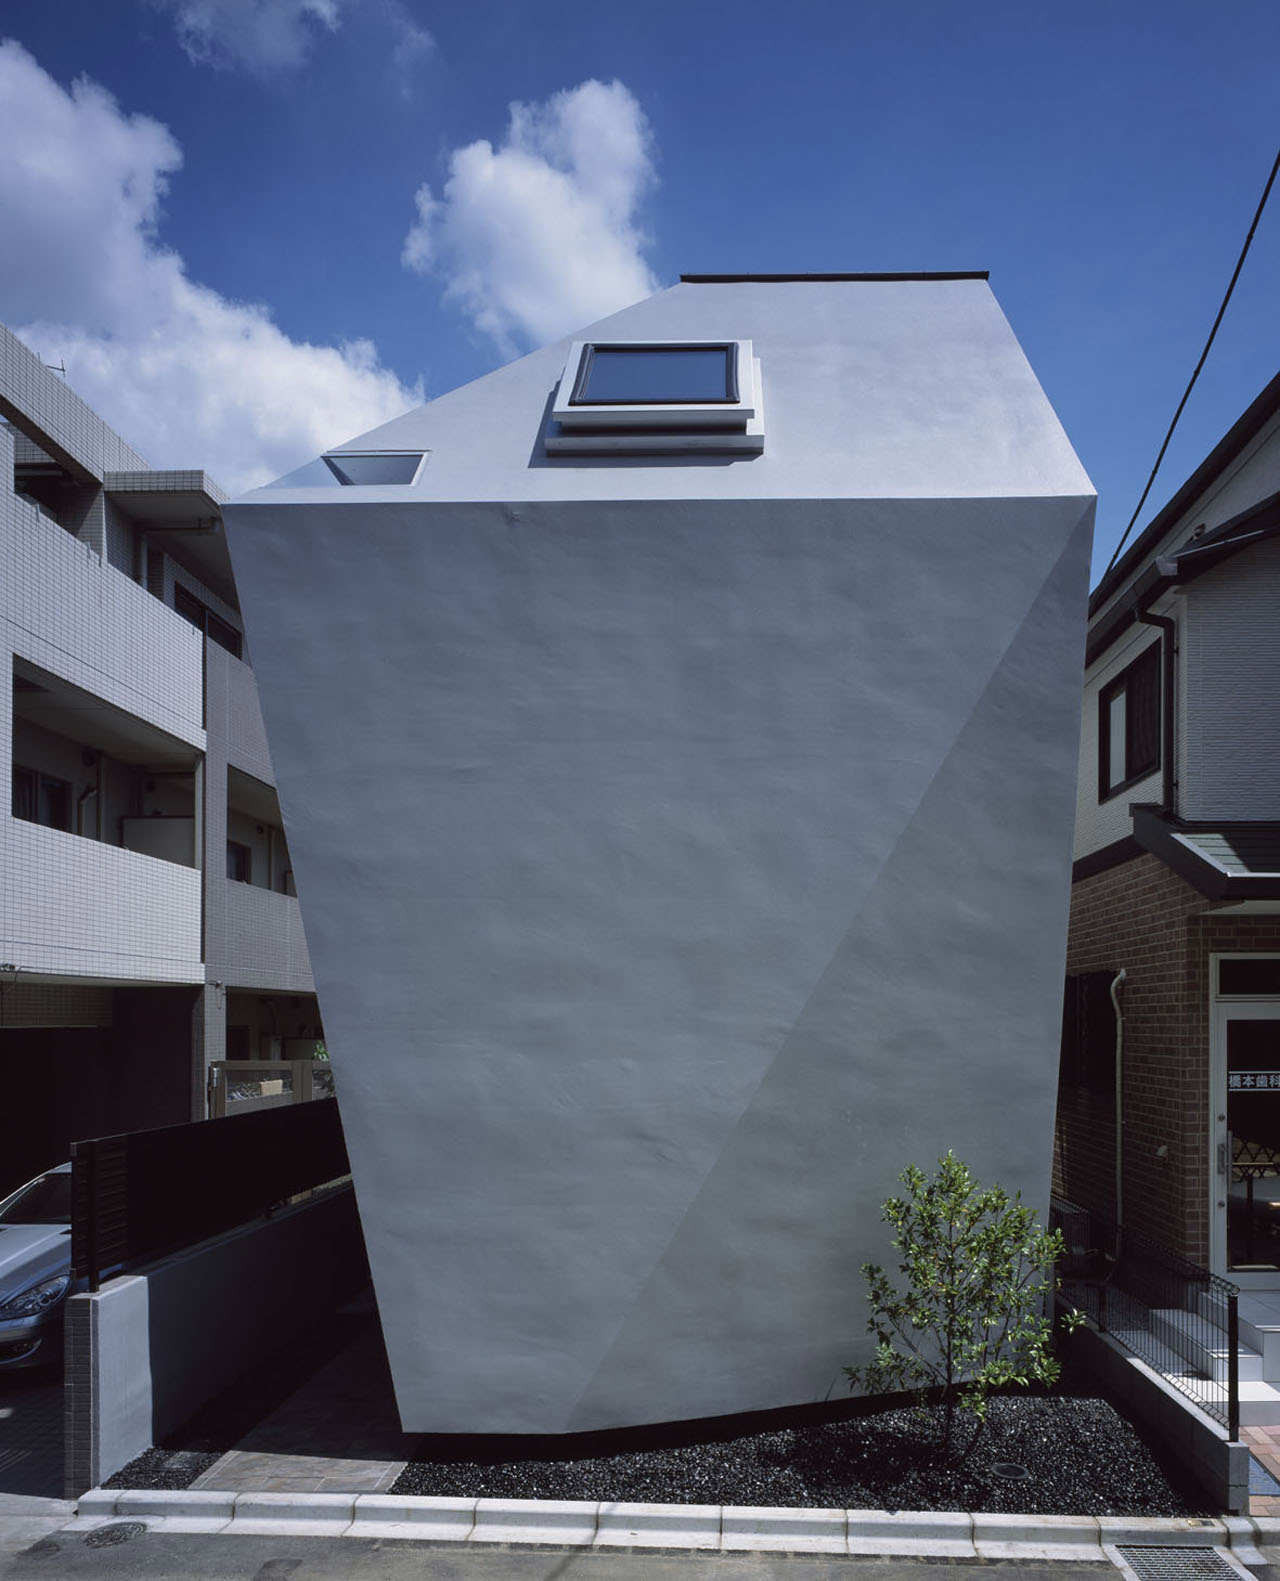 BB / Yo Yamagata Architects, © Forward stroke Inc